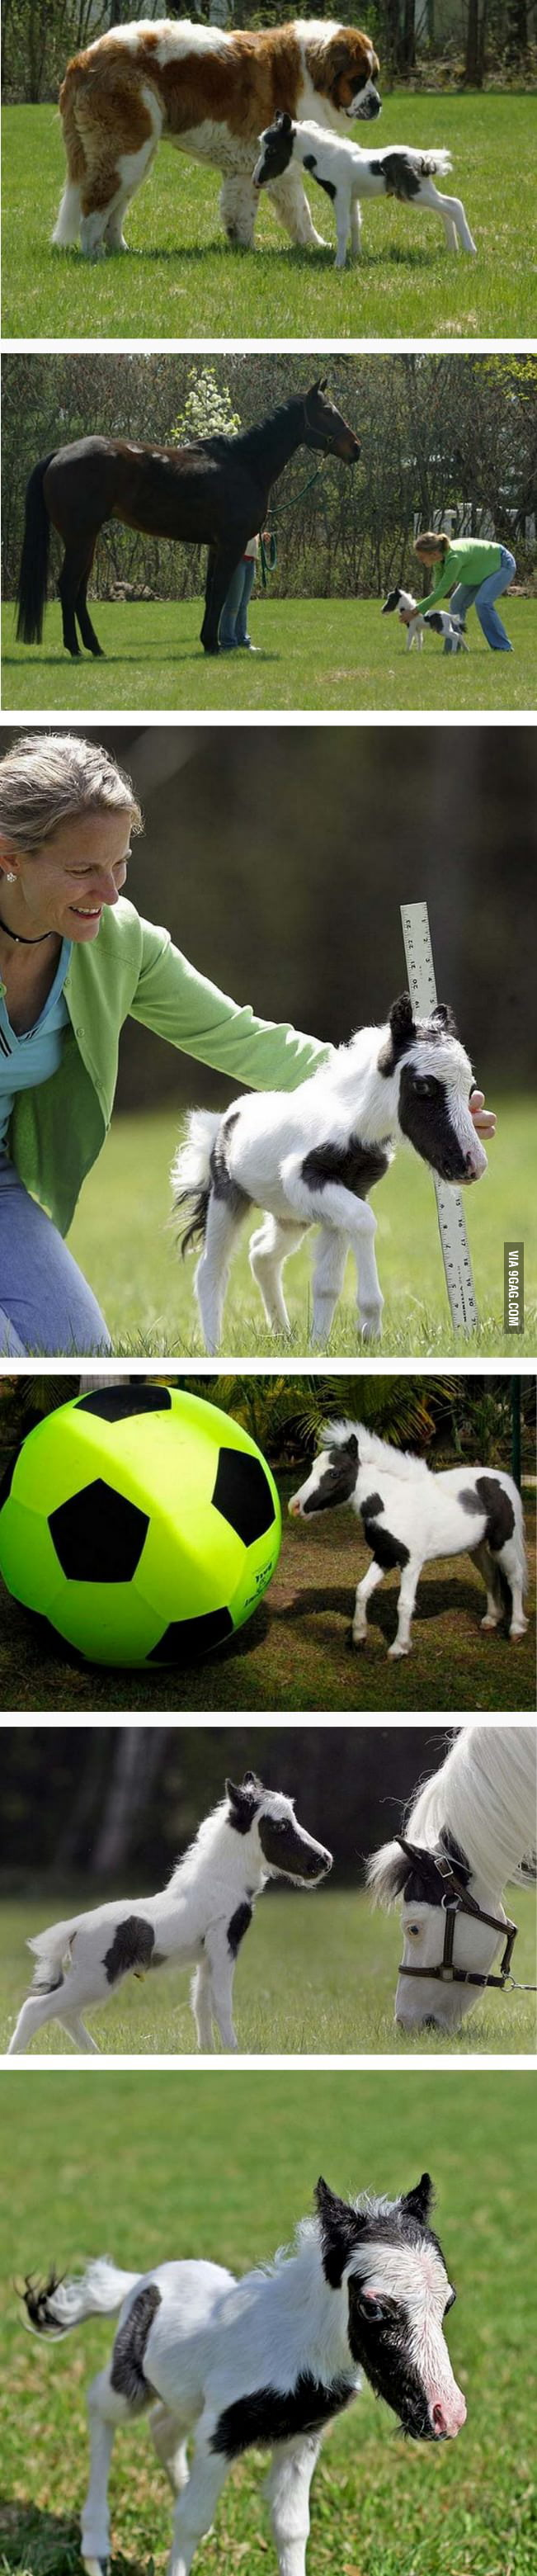 The world's smallest horse.